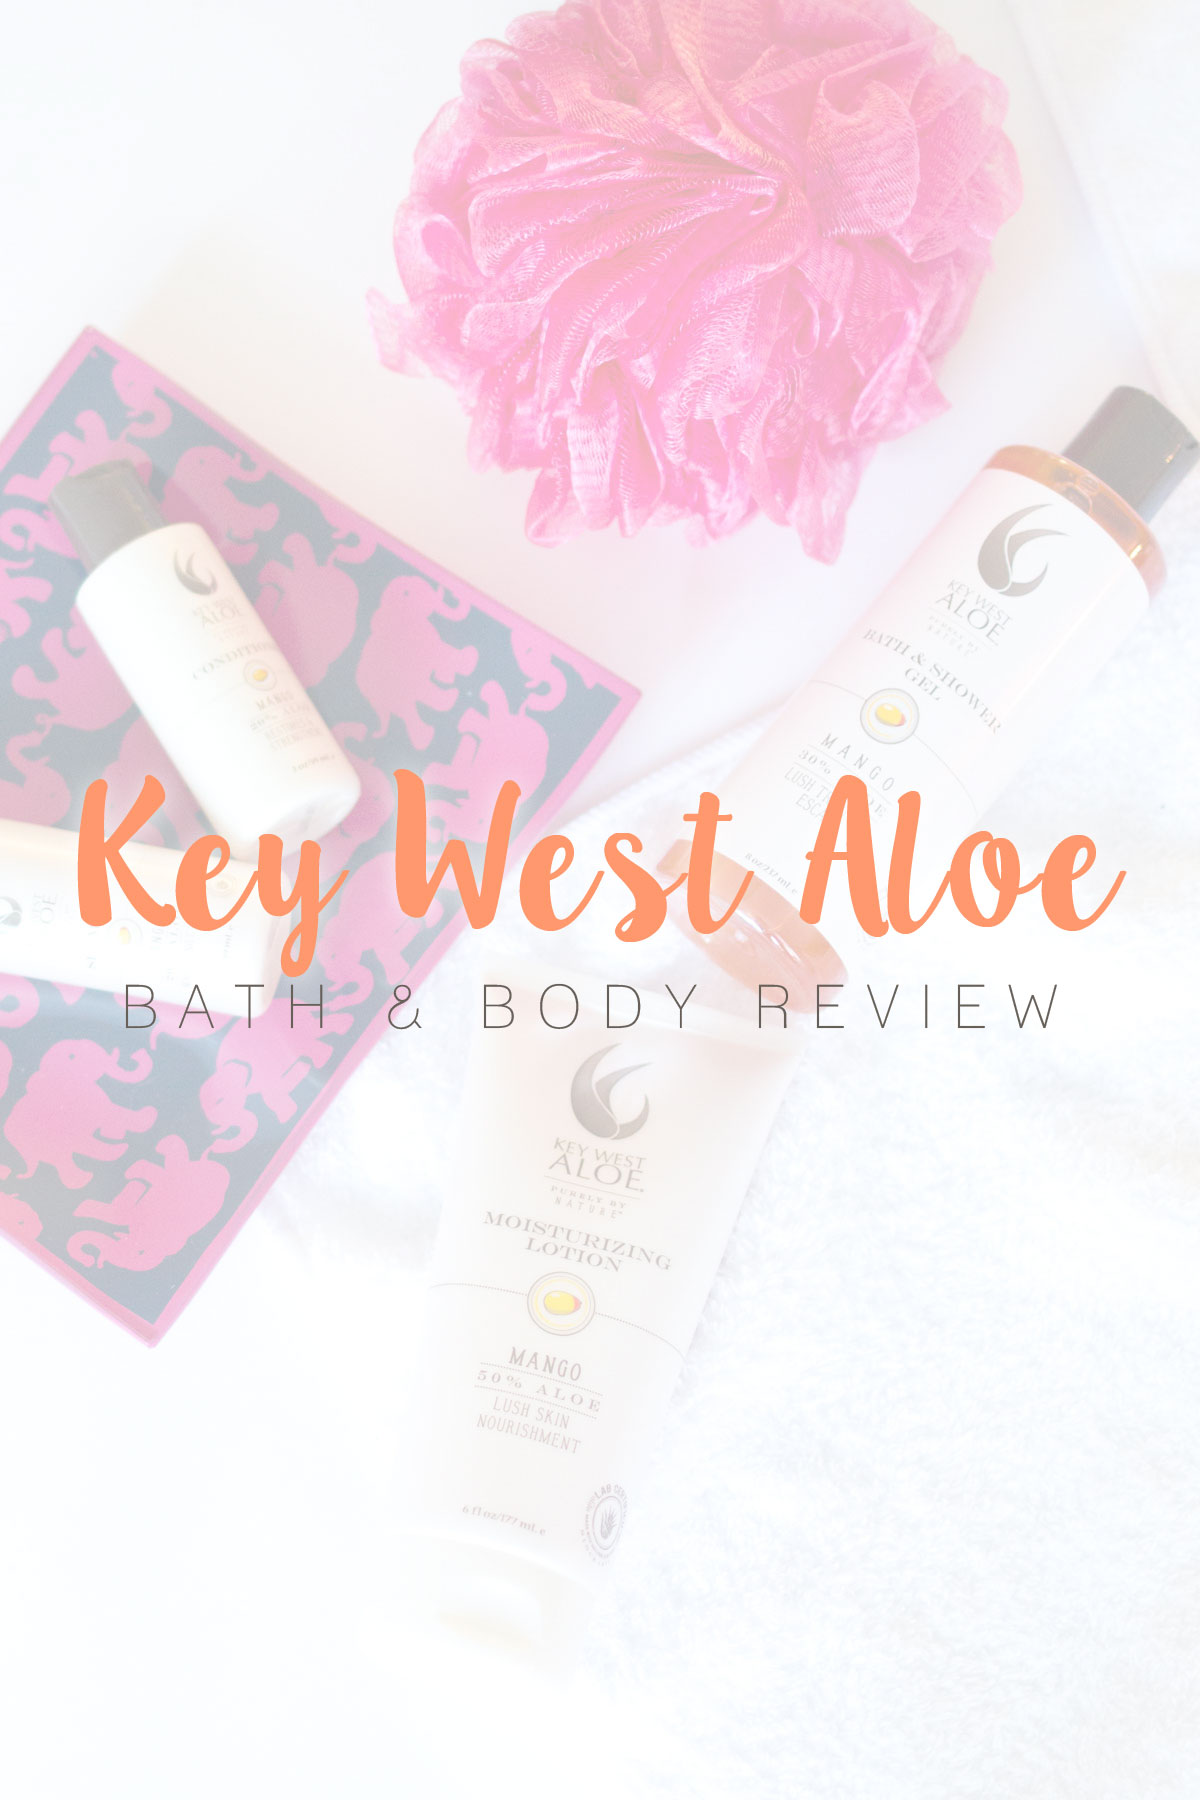 Key West Aloe Mango Bath & Body Product Review // Hello Rigby Seattle Beauty & Style Blog